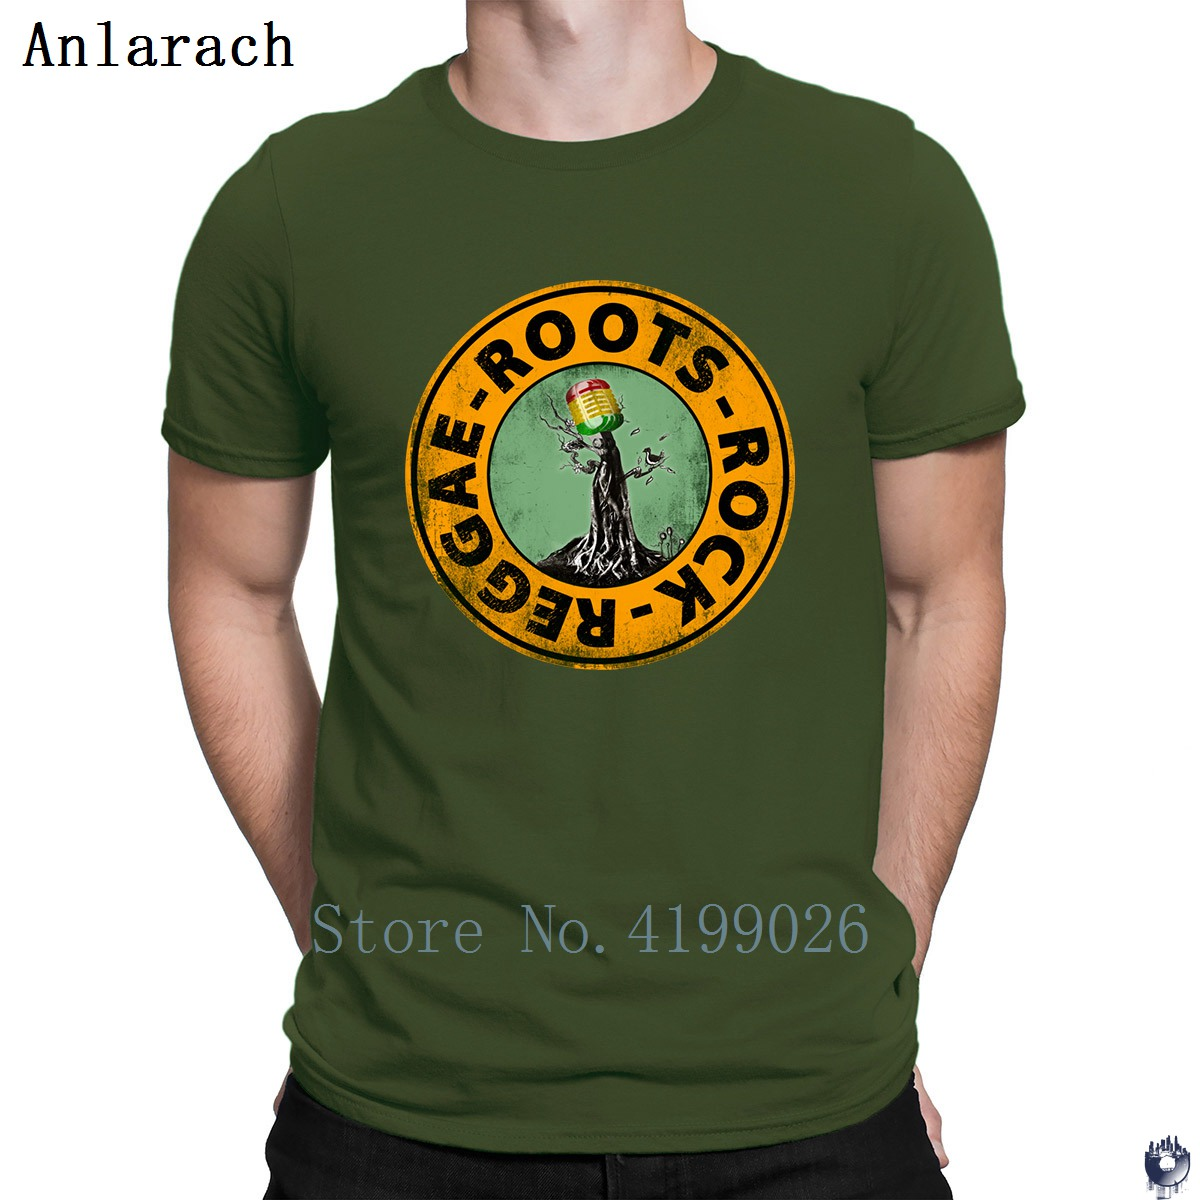 Image 5 - Roots Rock Reggae. t shirts Euro Size Pop Top Tee Basic Solid men's tshirt Designing High quality summer Anlarach New Style-in T-Shirts from Men's Clothing